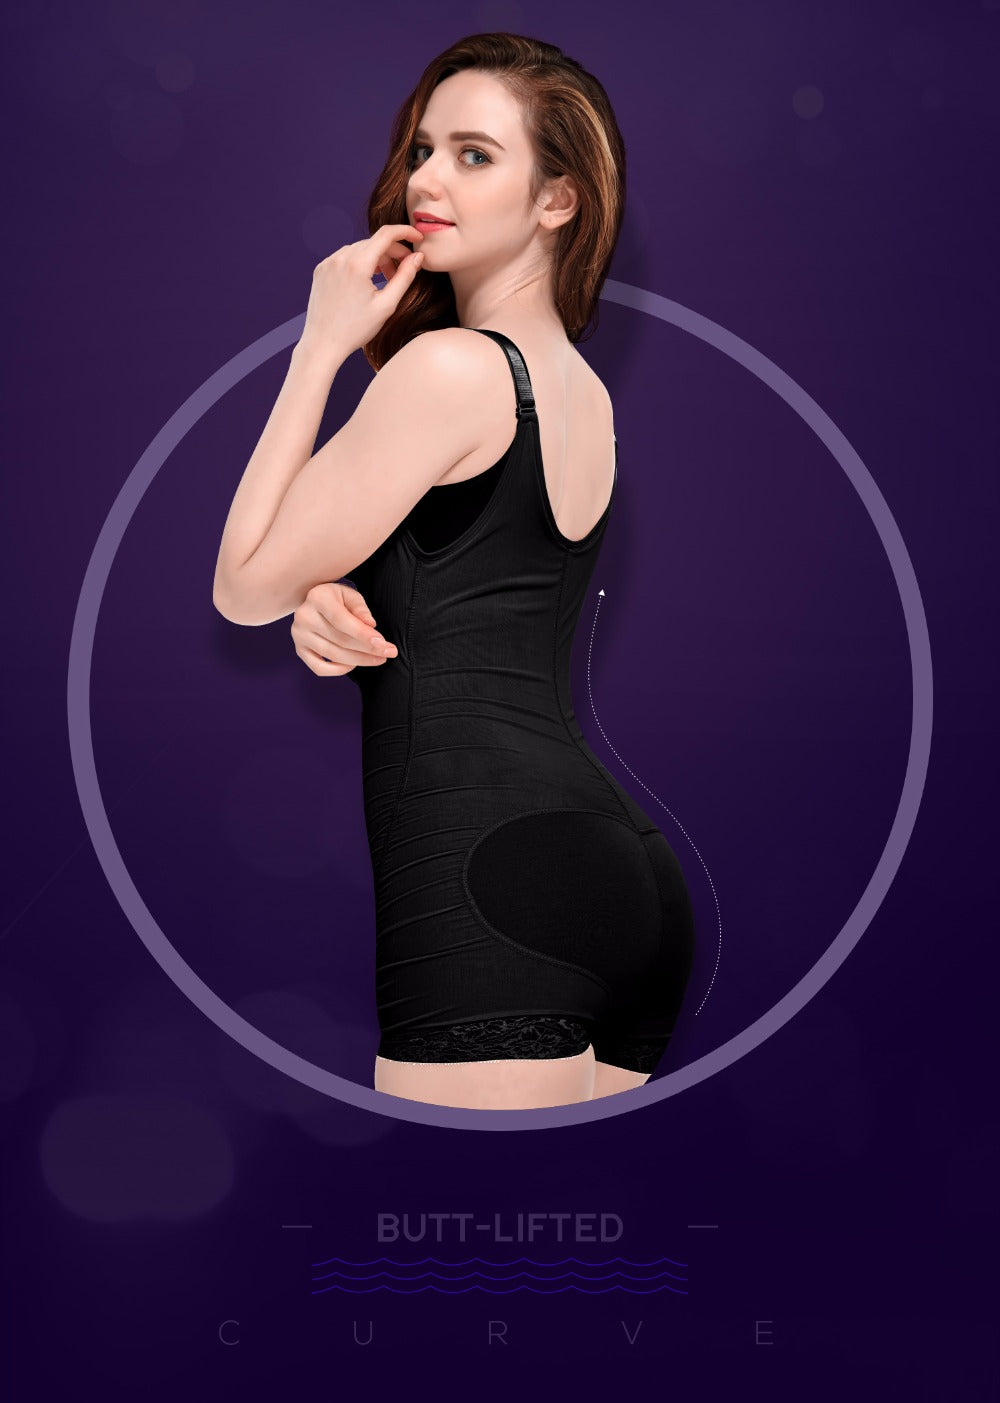 Body Shaper Bodysuit Slimming Underwear Waist Trainer Posture Control Shapewear Lingerie For Women